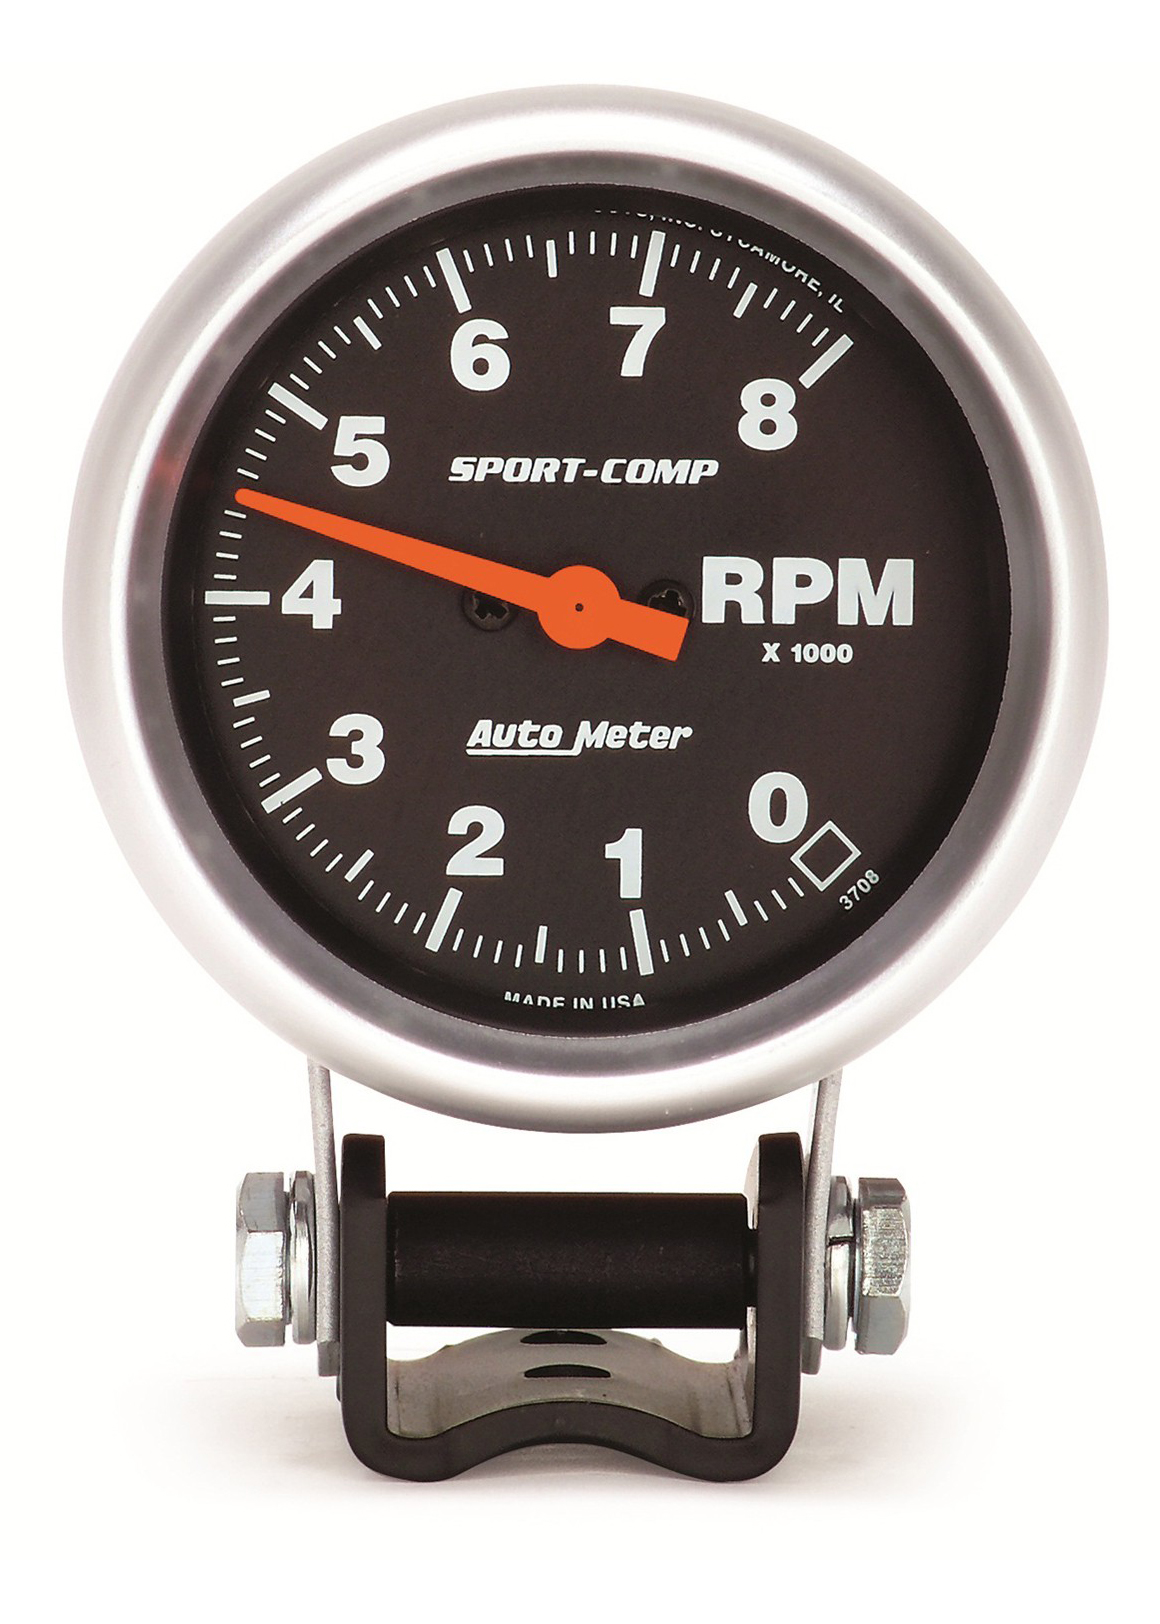 hight resolution of auto meter sport comp tachs feature u s made air core electronic movements that resist vibration and provide extremely accurate motion